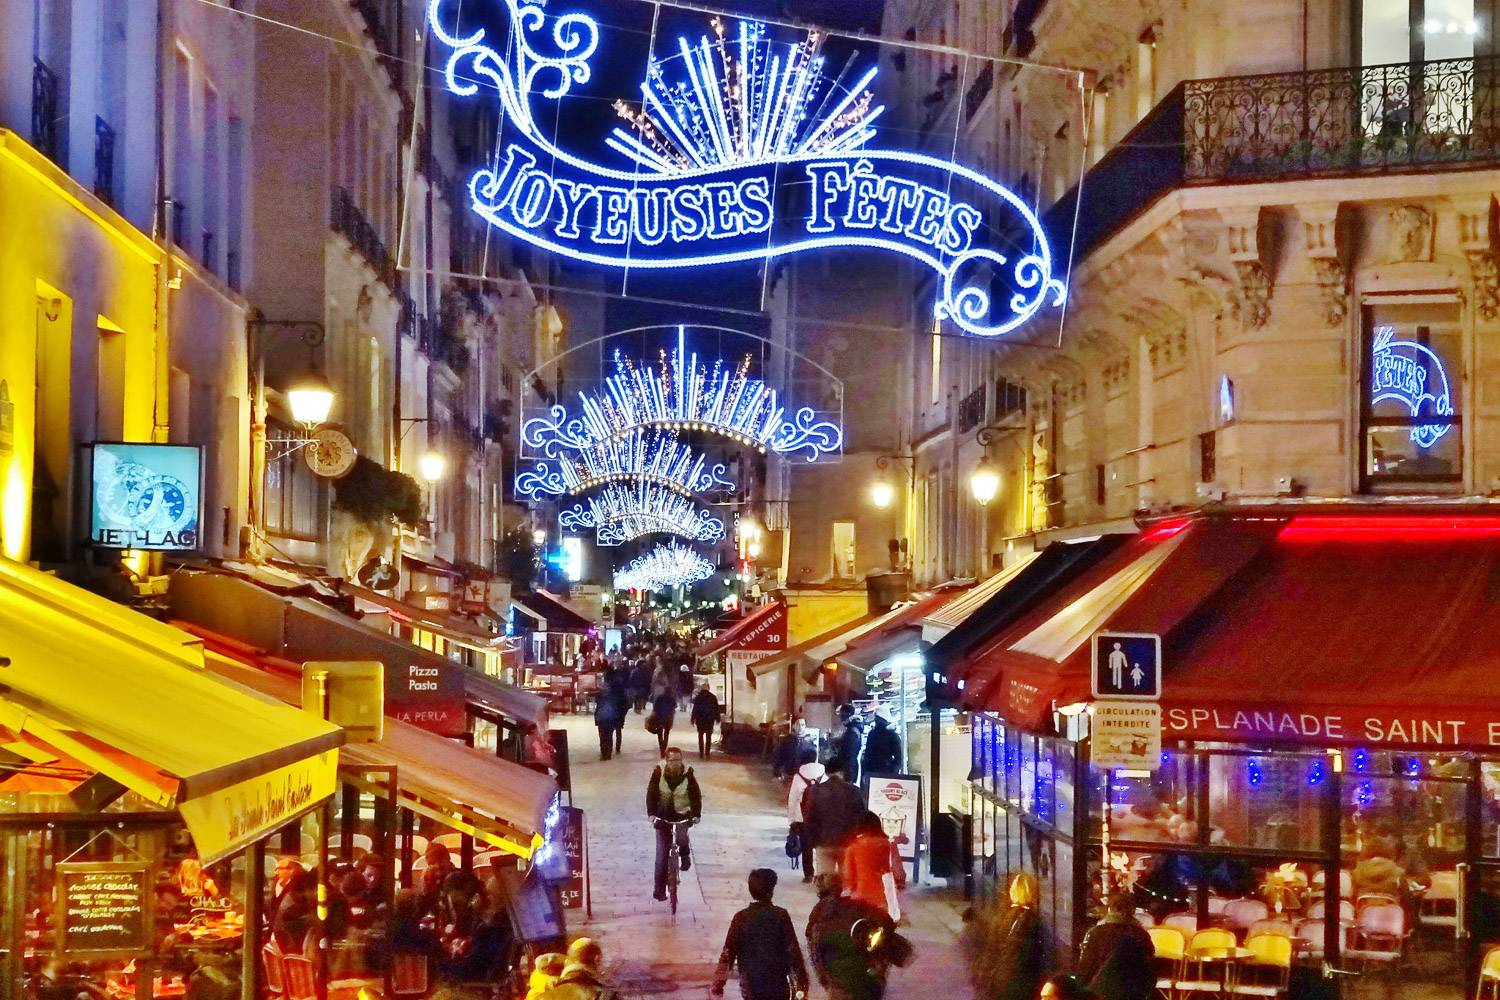 Image of the Rue Montorgueil street showing shops on either side with Christmas decorations lighting up the path above.